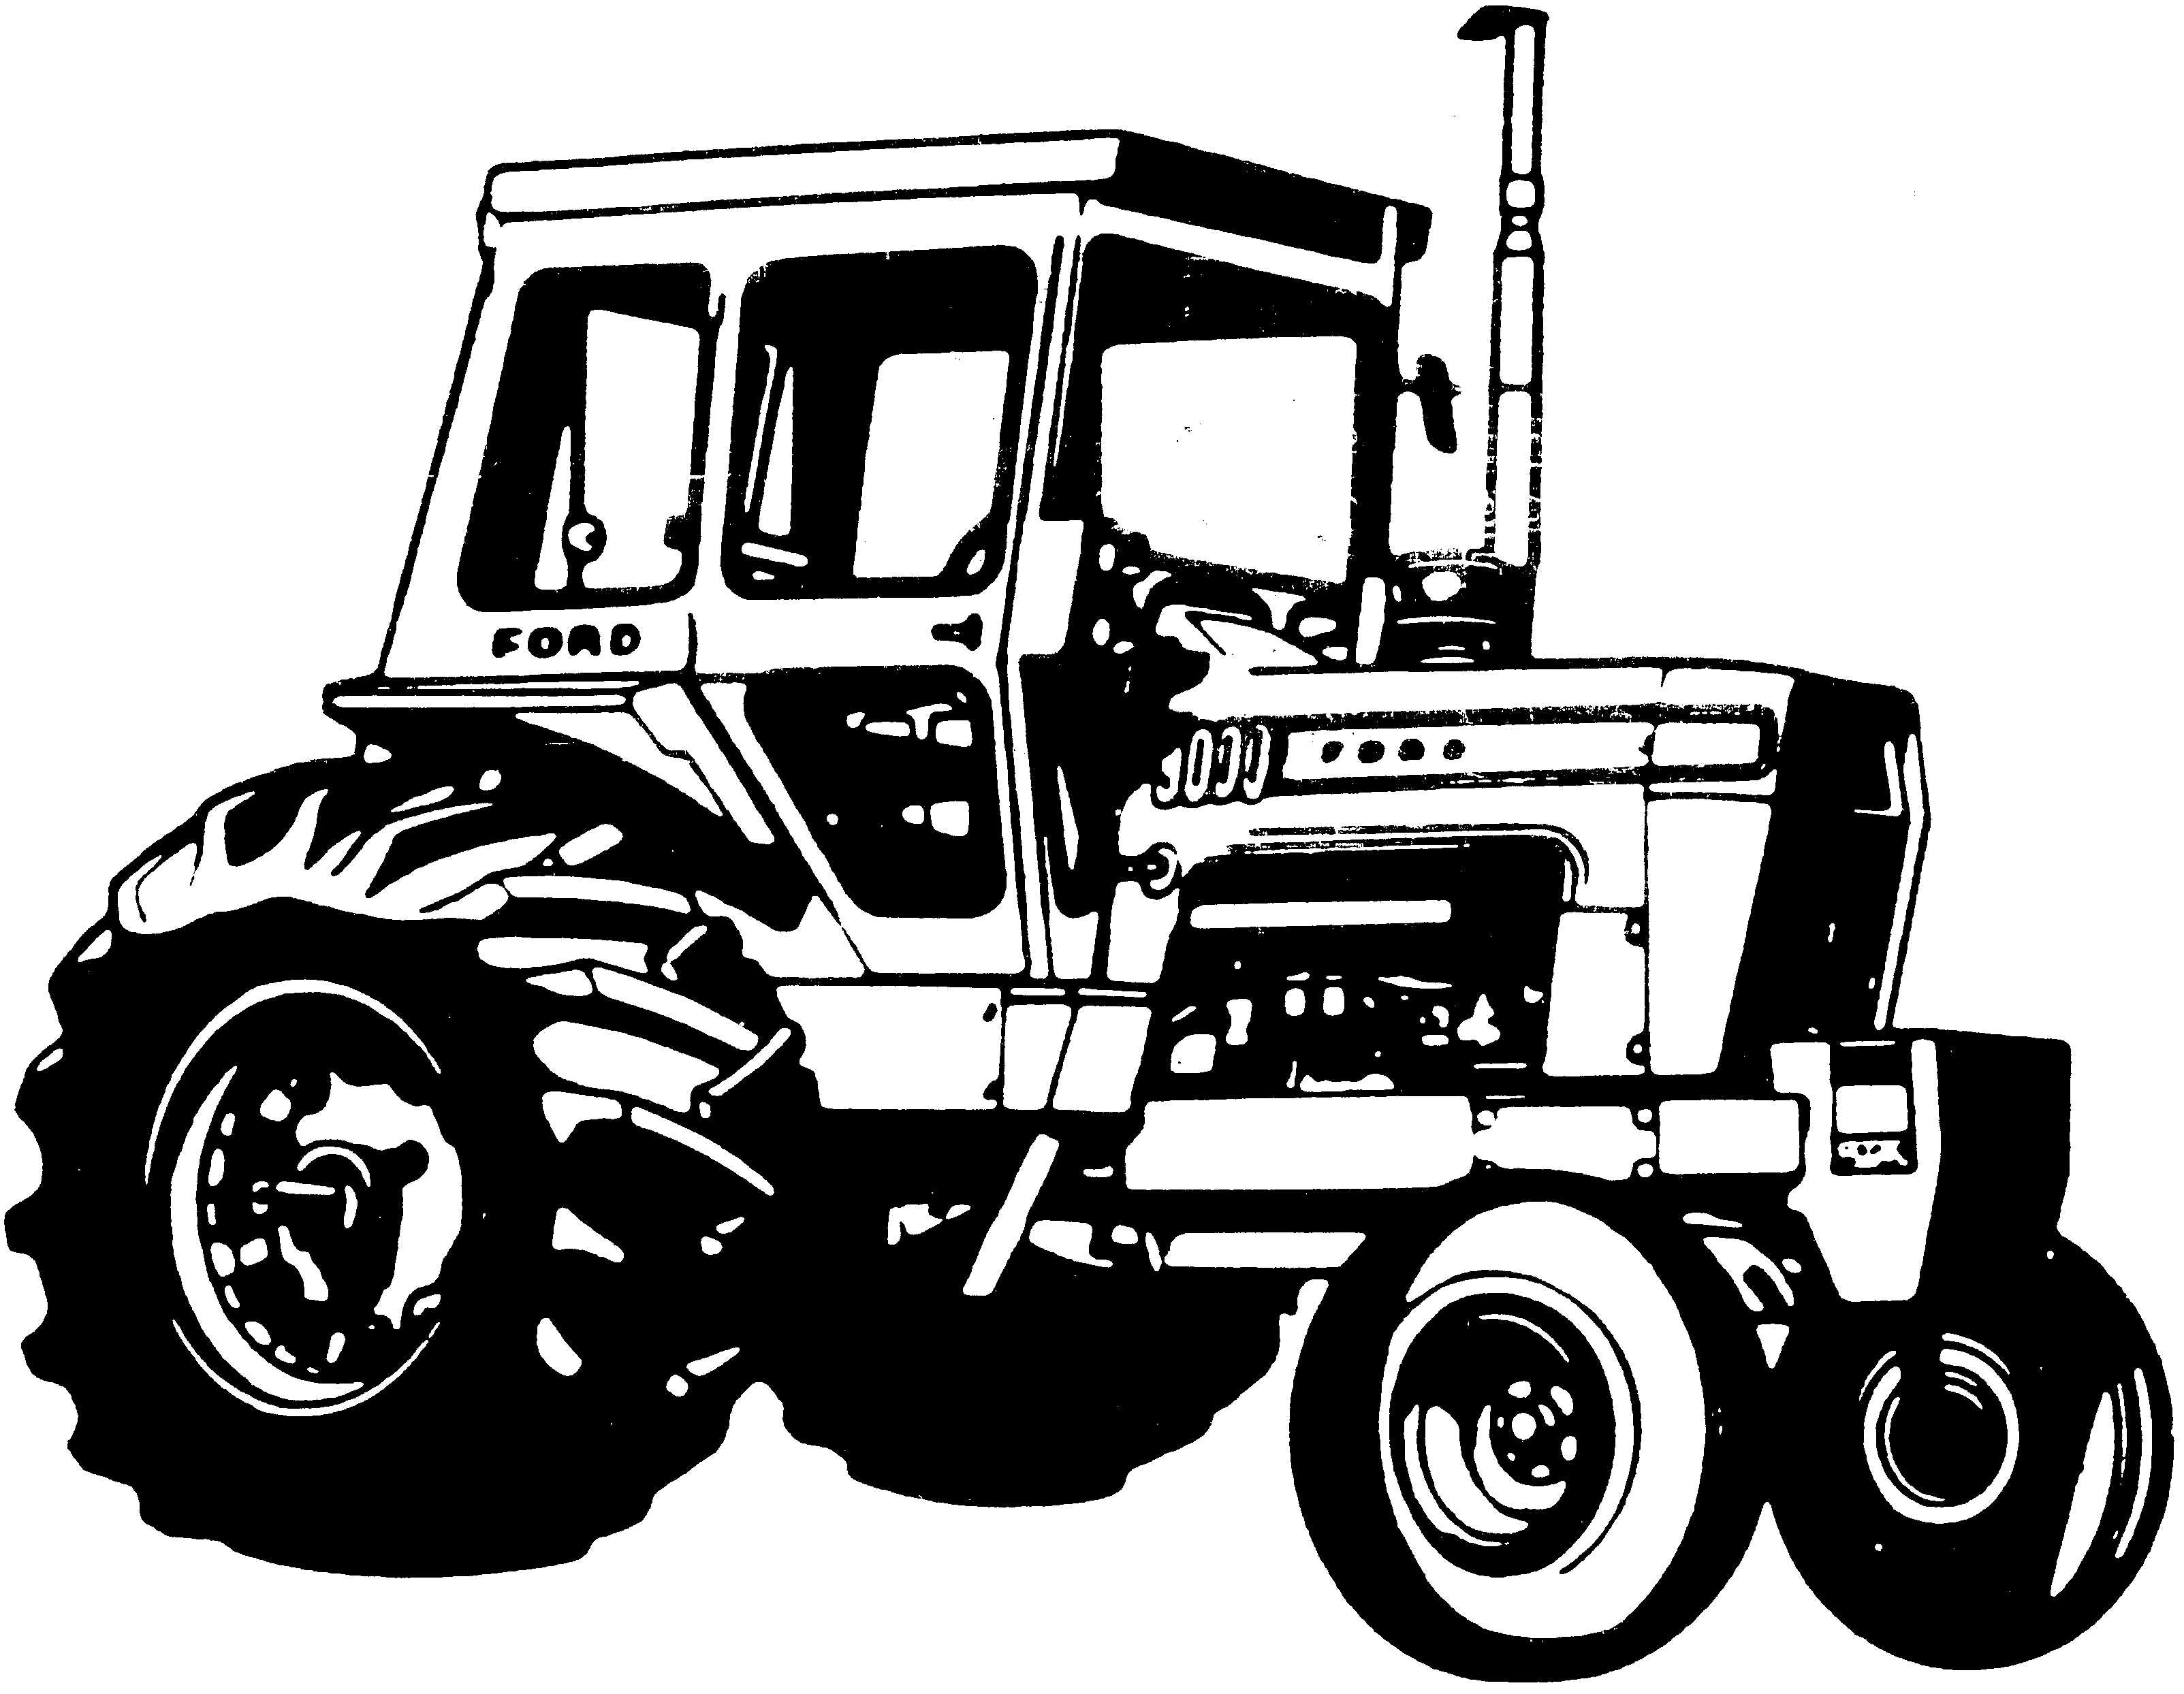 8600 ford tractor manual Lincoln Arc Welder Wiring Diagram array manual u2022 pagelarge rh pagelarge